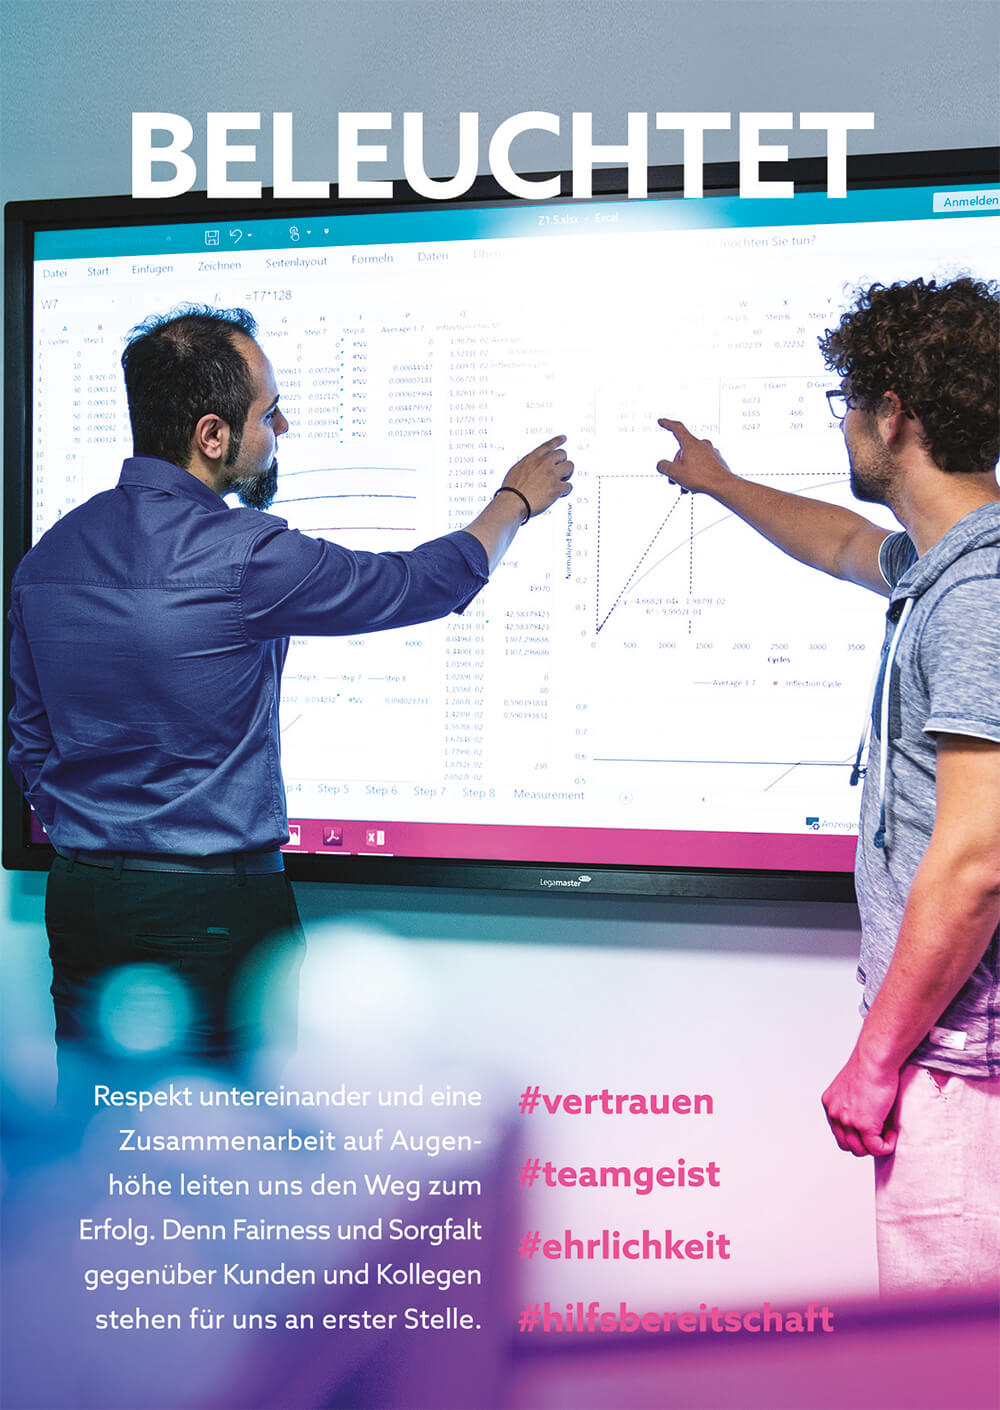 Two experts standing in front of the electronic whiteboard